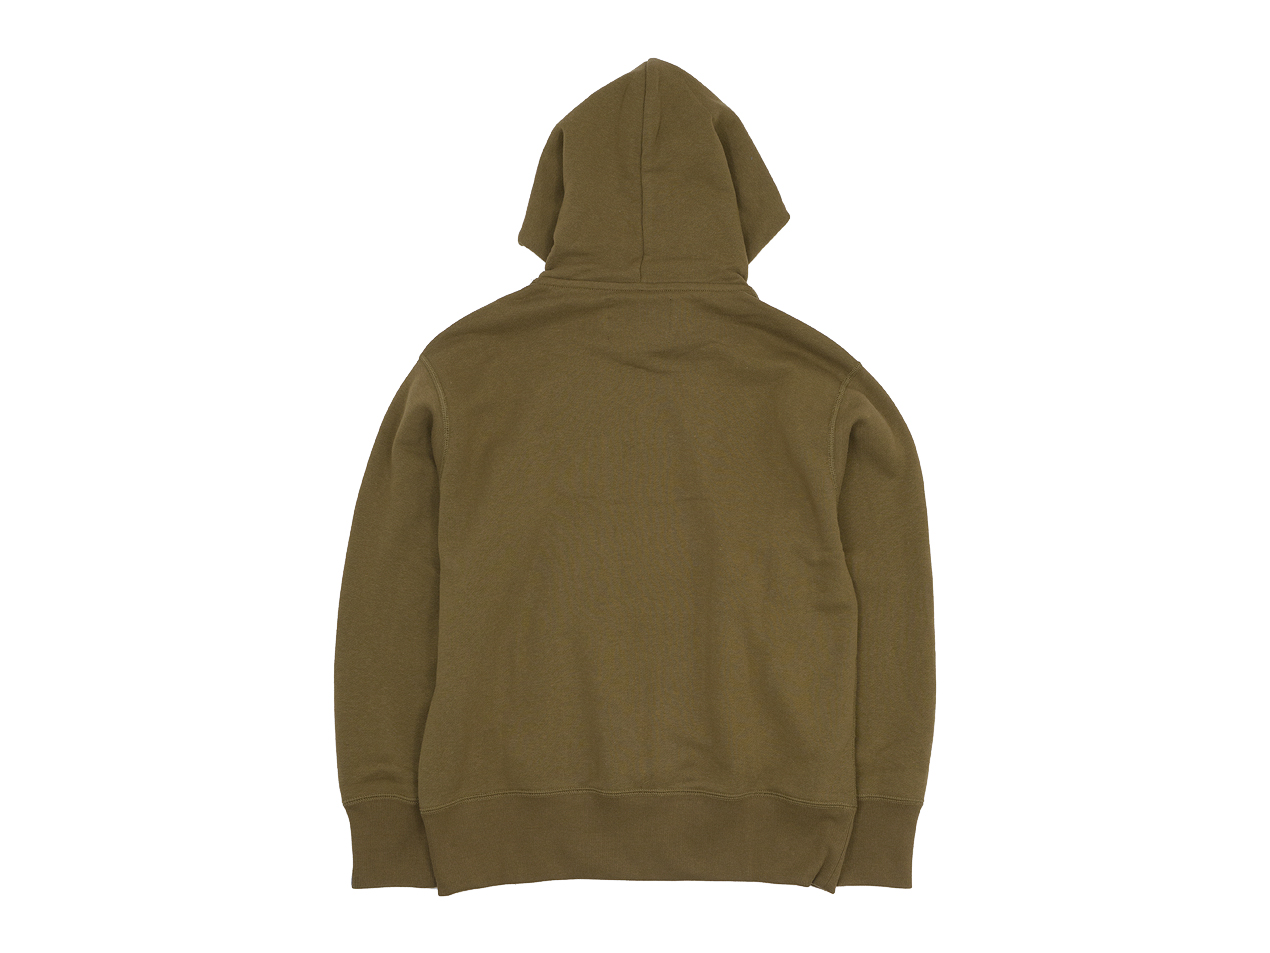 MHL. LIGHT LOOPBACK COTTON HOODED PARKA